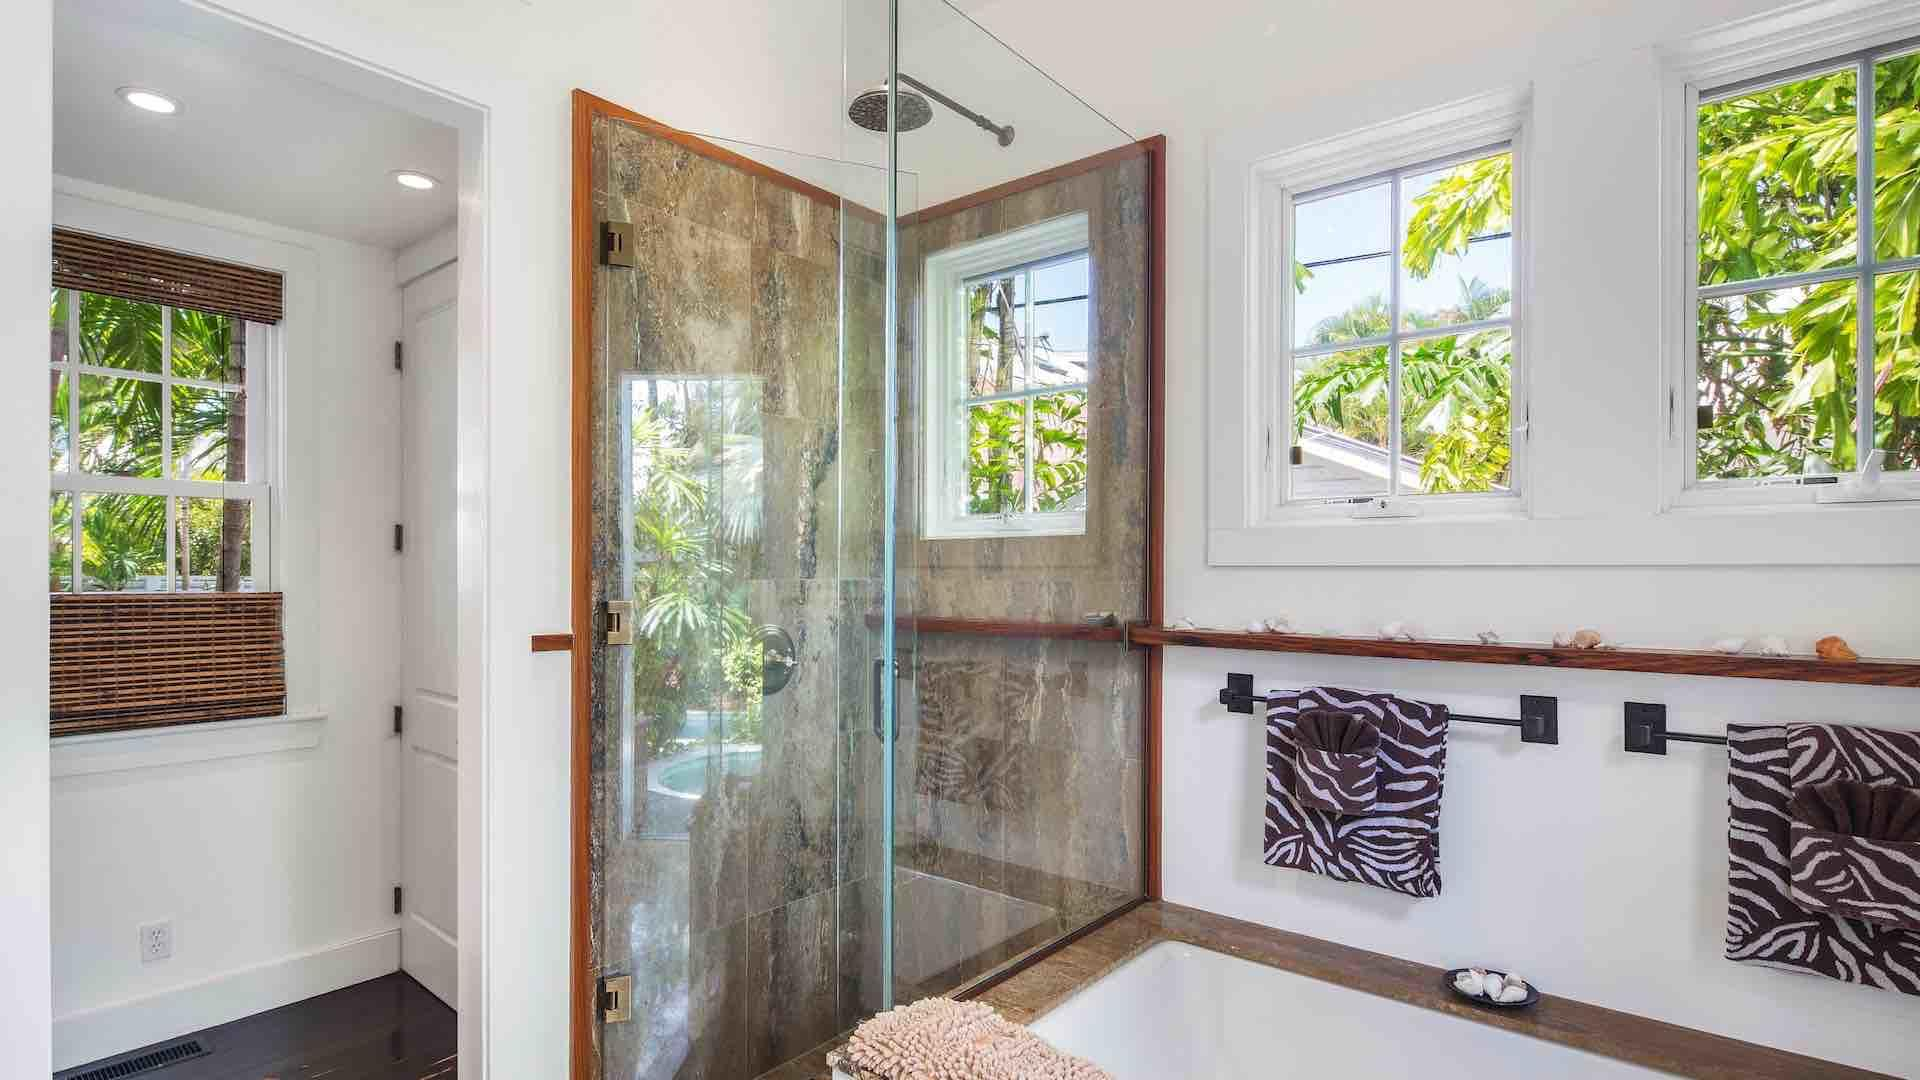 The master bathroom has a glass shower and deep tub...